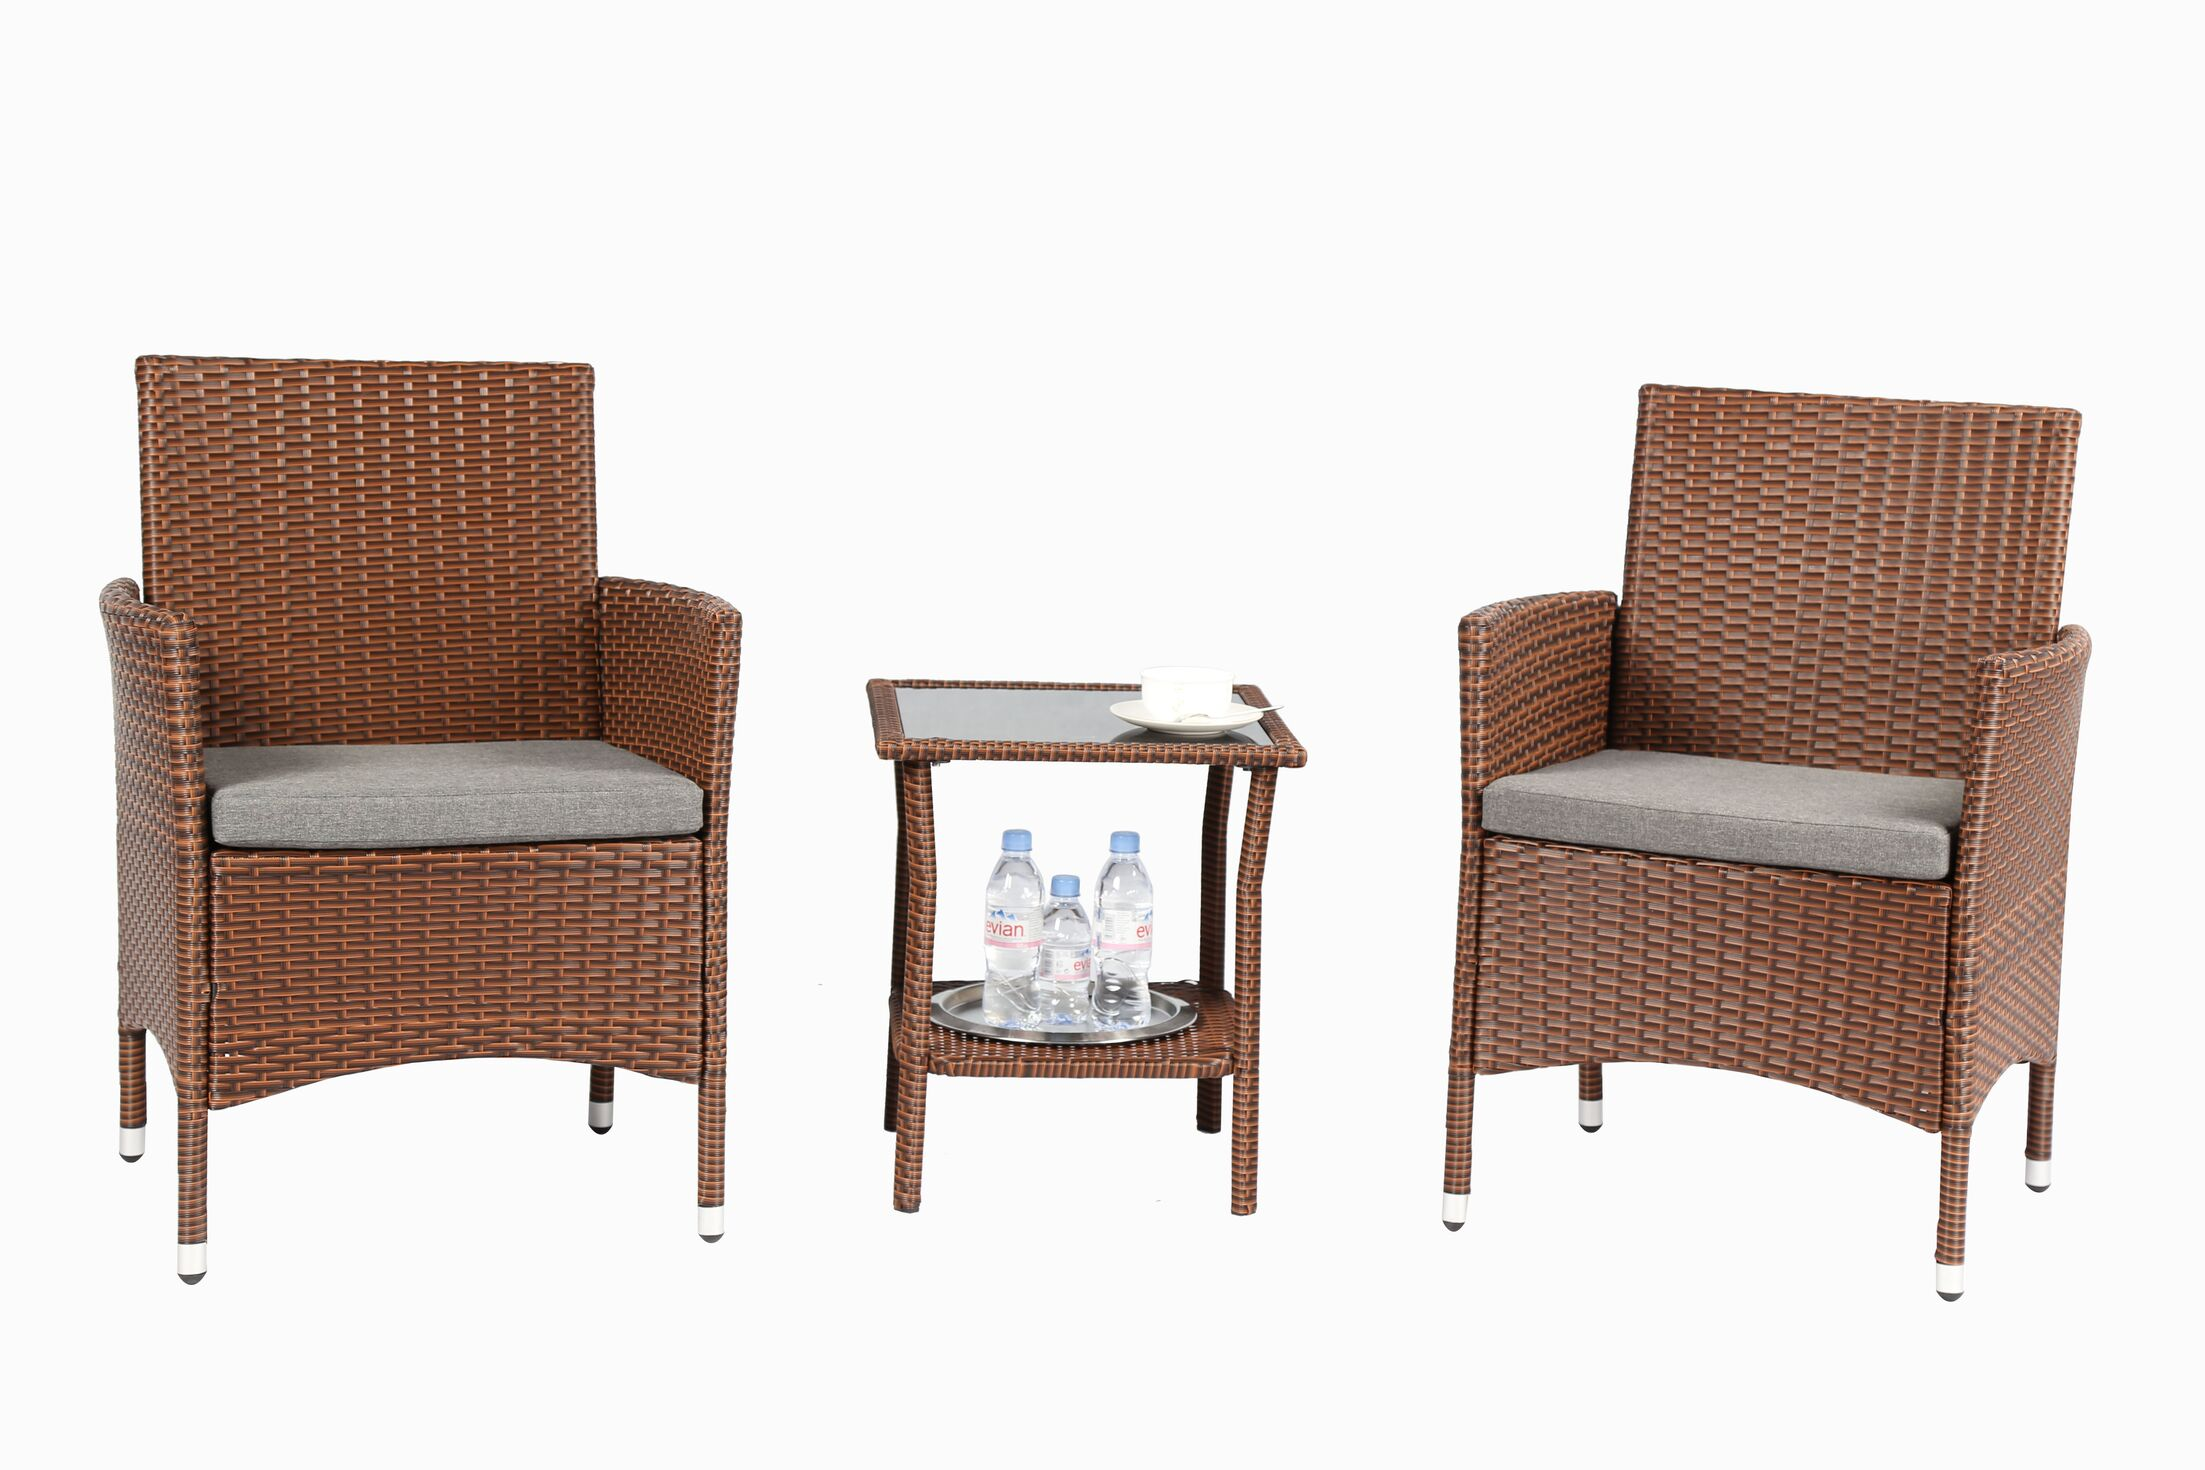 3 Piece Conservation Set with Cushions Color: Brown